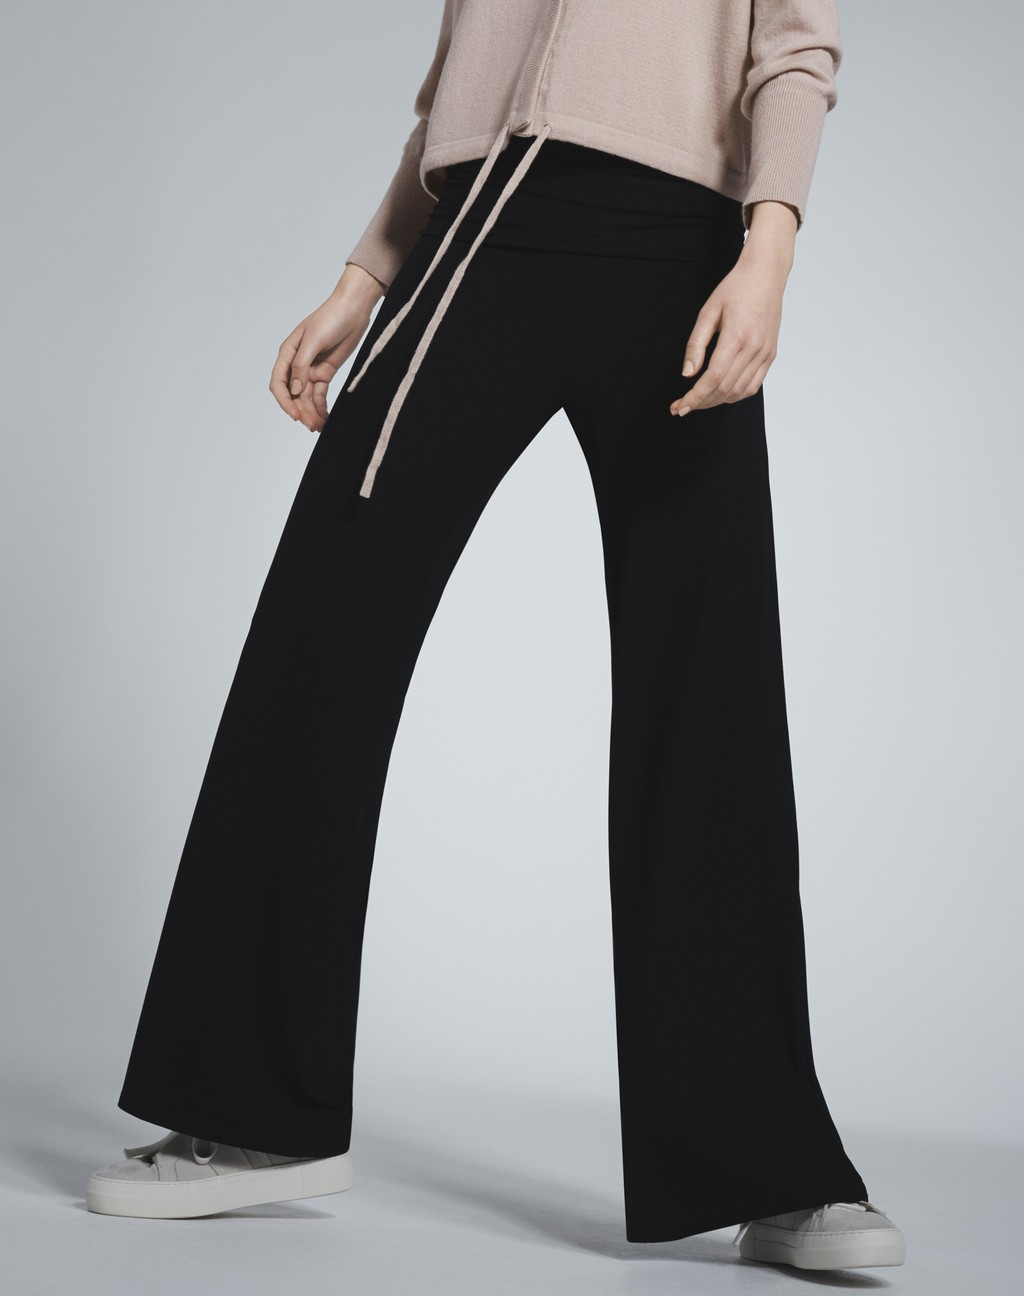 Palazzo Pants Black - length: standard; pattern: plain; waist: mid/regular rise; predominant colour: black; occasions: evening; fibres: viscose/rayon - stretch; texture group: crepes; fit: wide leg; pattern type: fabric; style: standard; season: s/s 2016; wardrobe: event